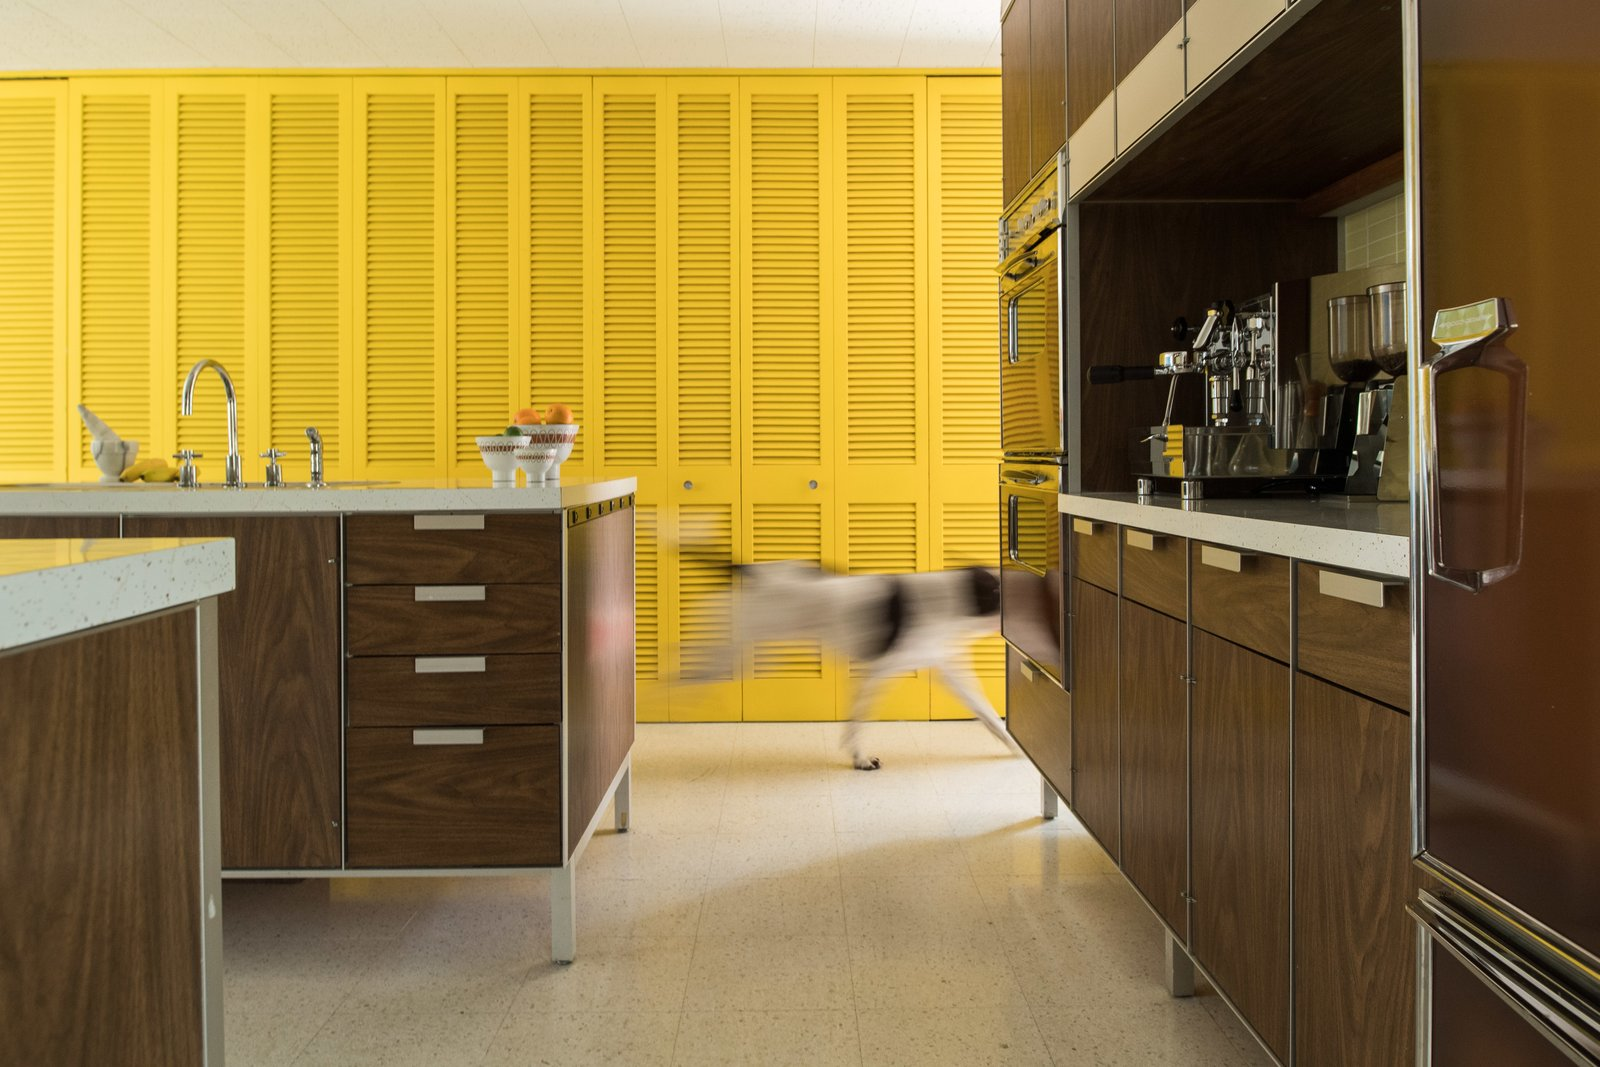 Kitchen and Terrazzo Floor Bright closet doors provide storage space and a healthy dose of color from various vantage points.  Photo 7 of 14 in A Rare Midcentury Prefab Looks Just Like it Did in 1958—Down to the Knoll and Paul McCobb Interiors